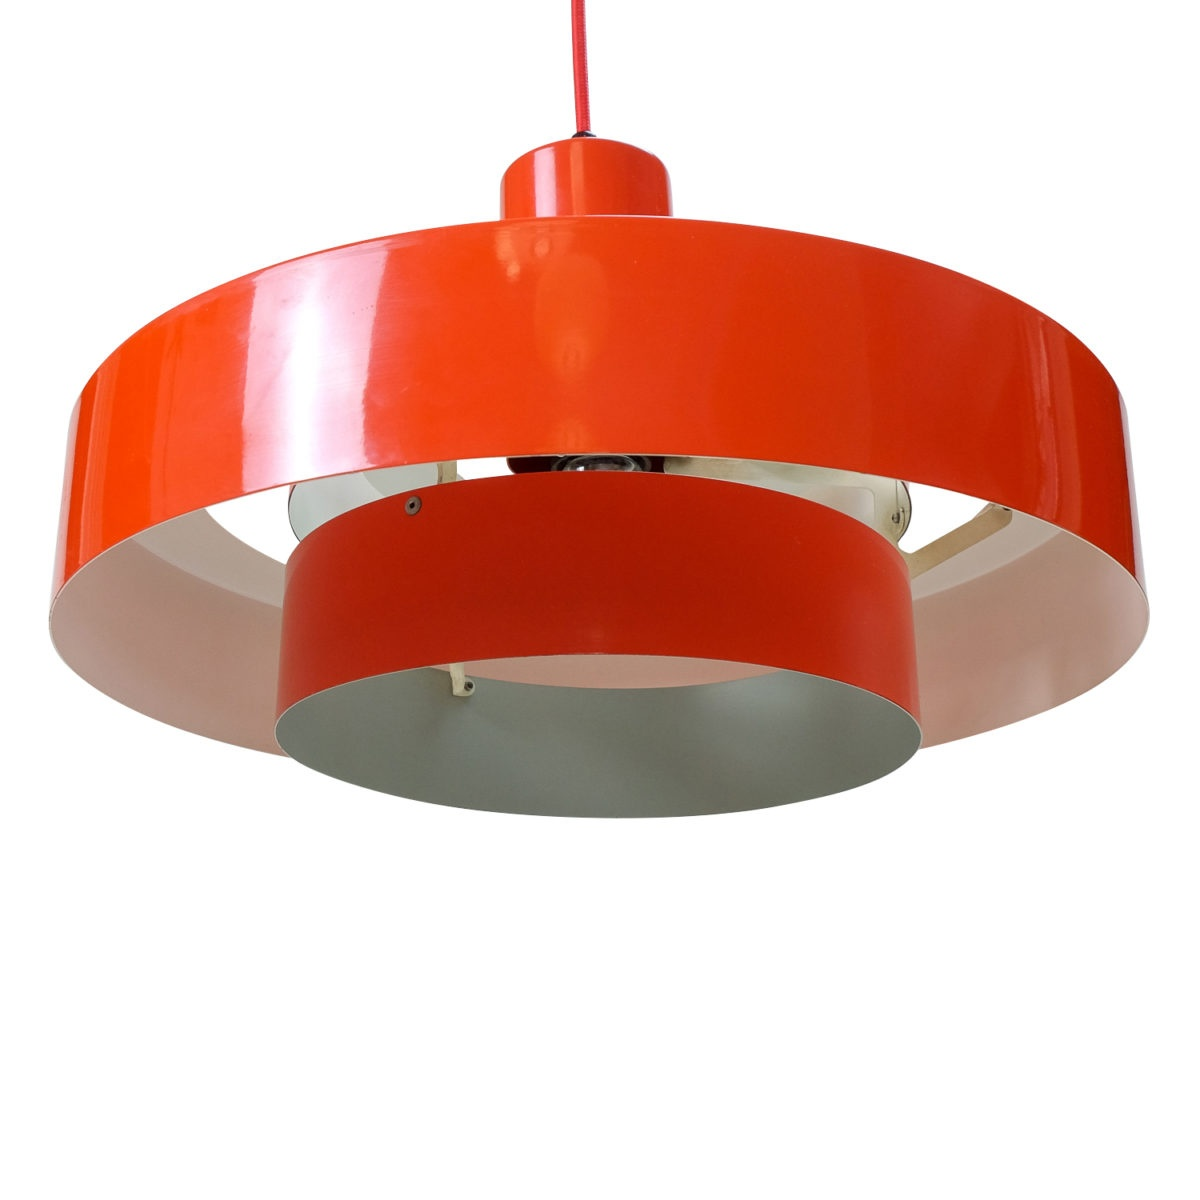 vintage Red Equator Pendant by Jo Hammerborg for Fog & Mørup